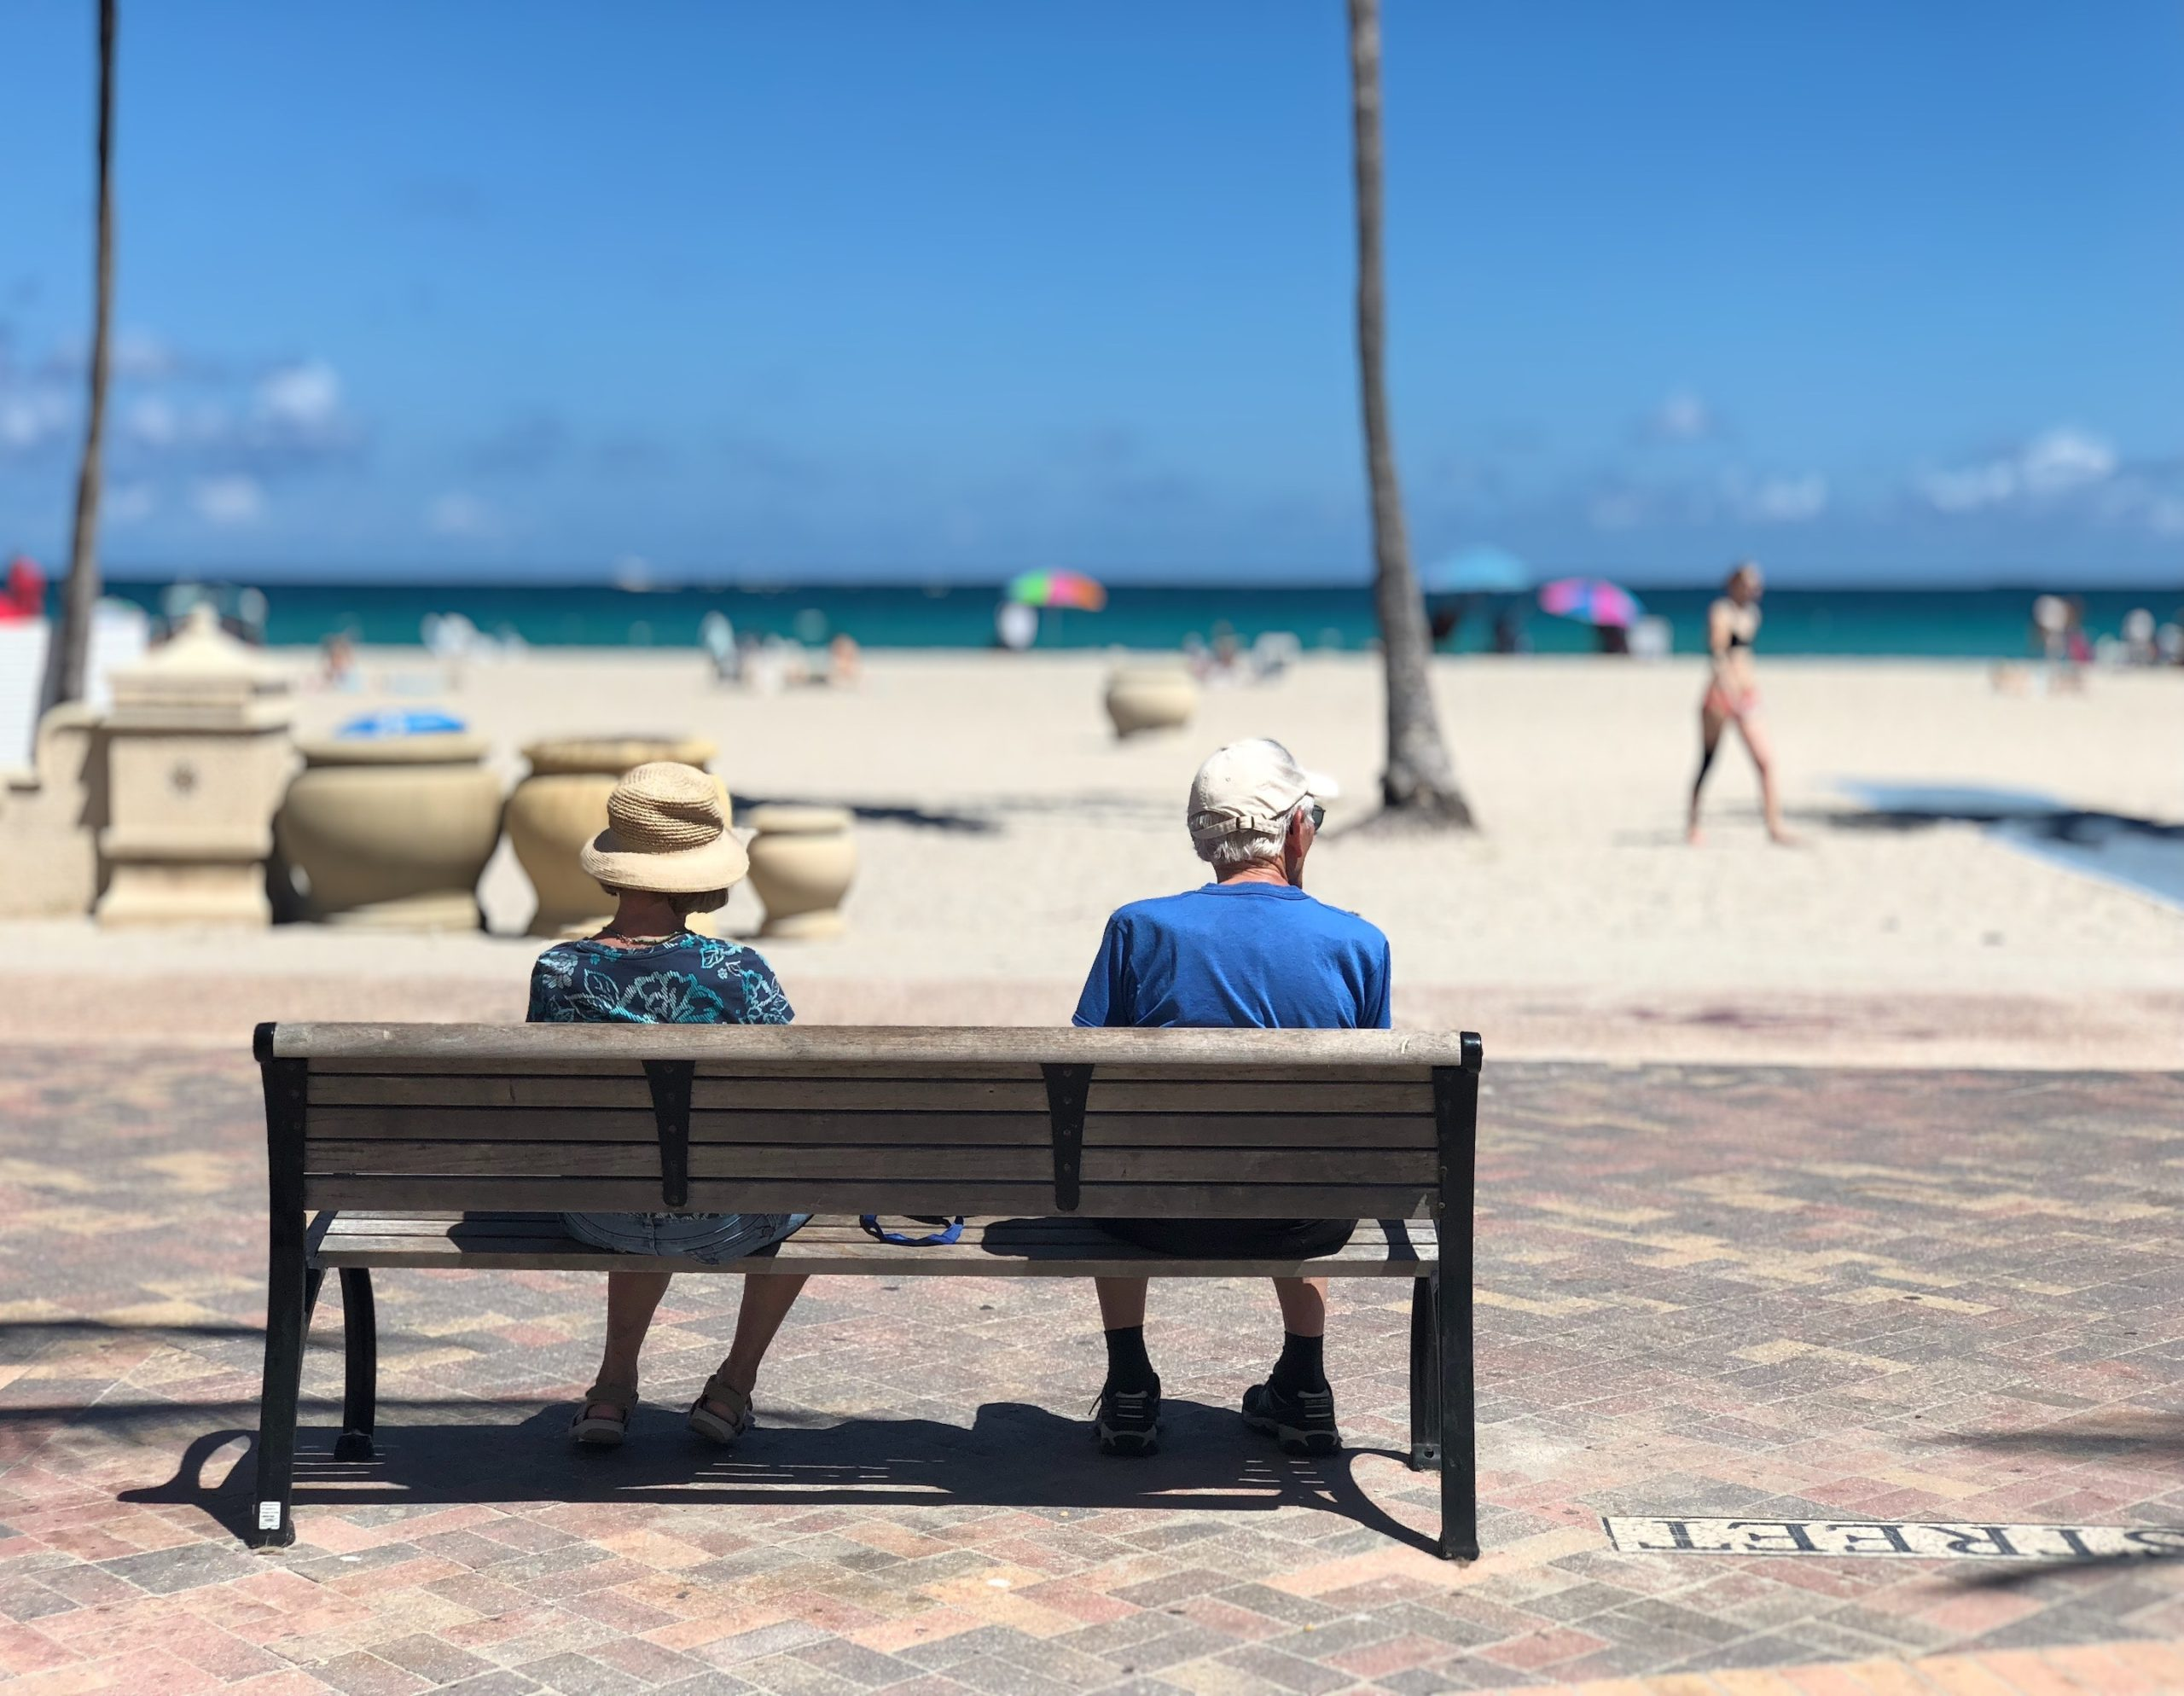 Cognitive Decline and Aging